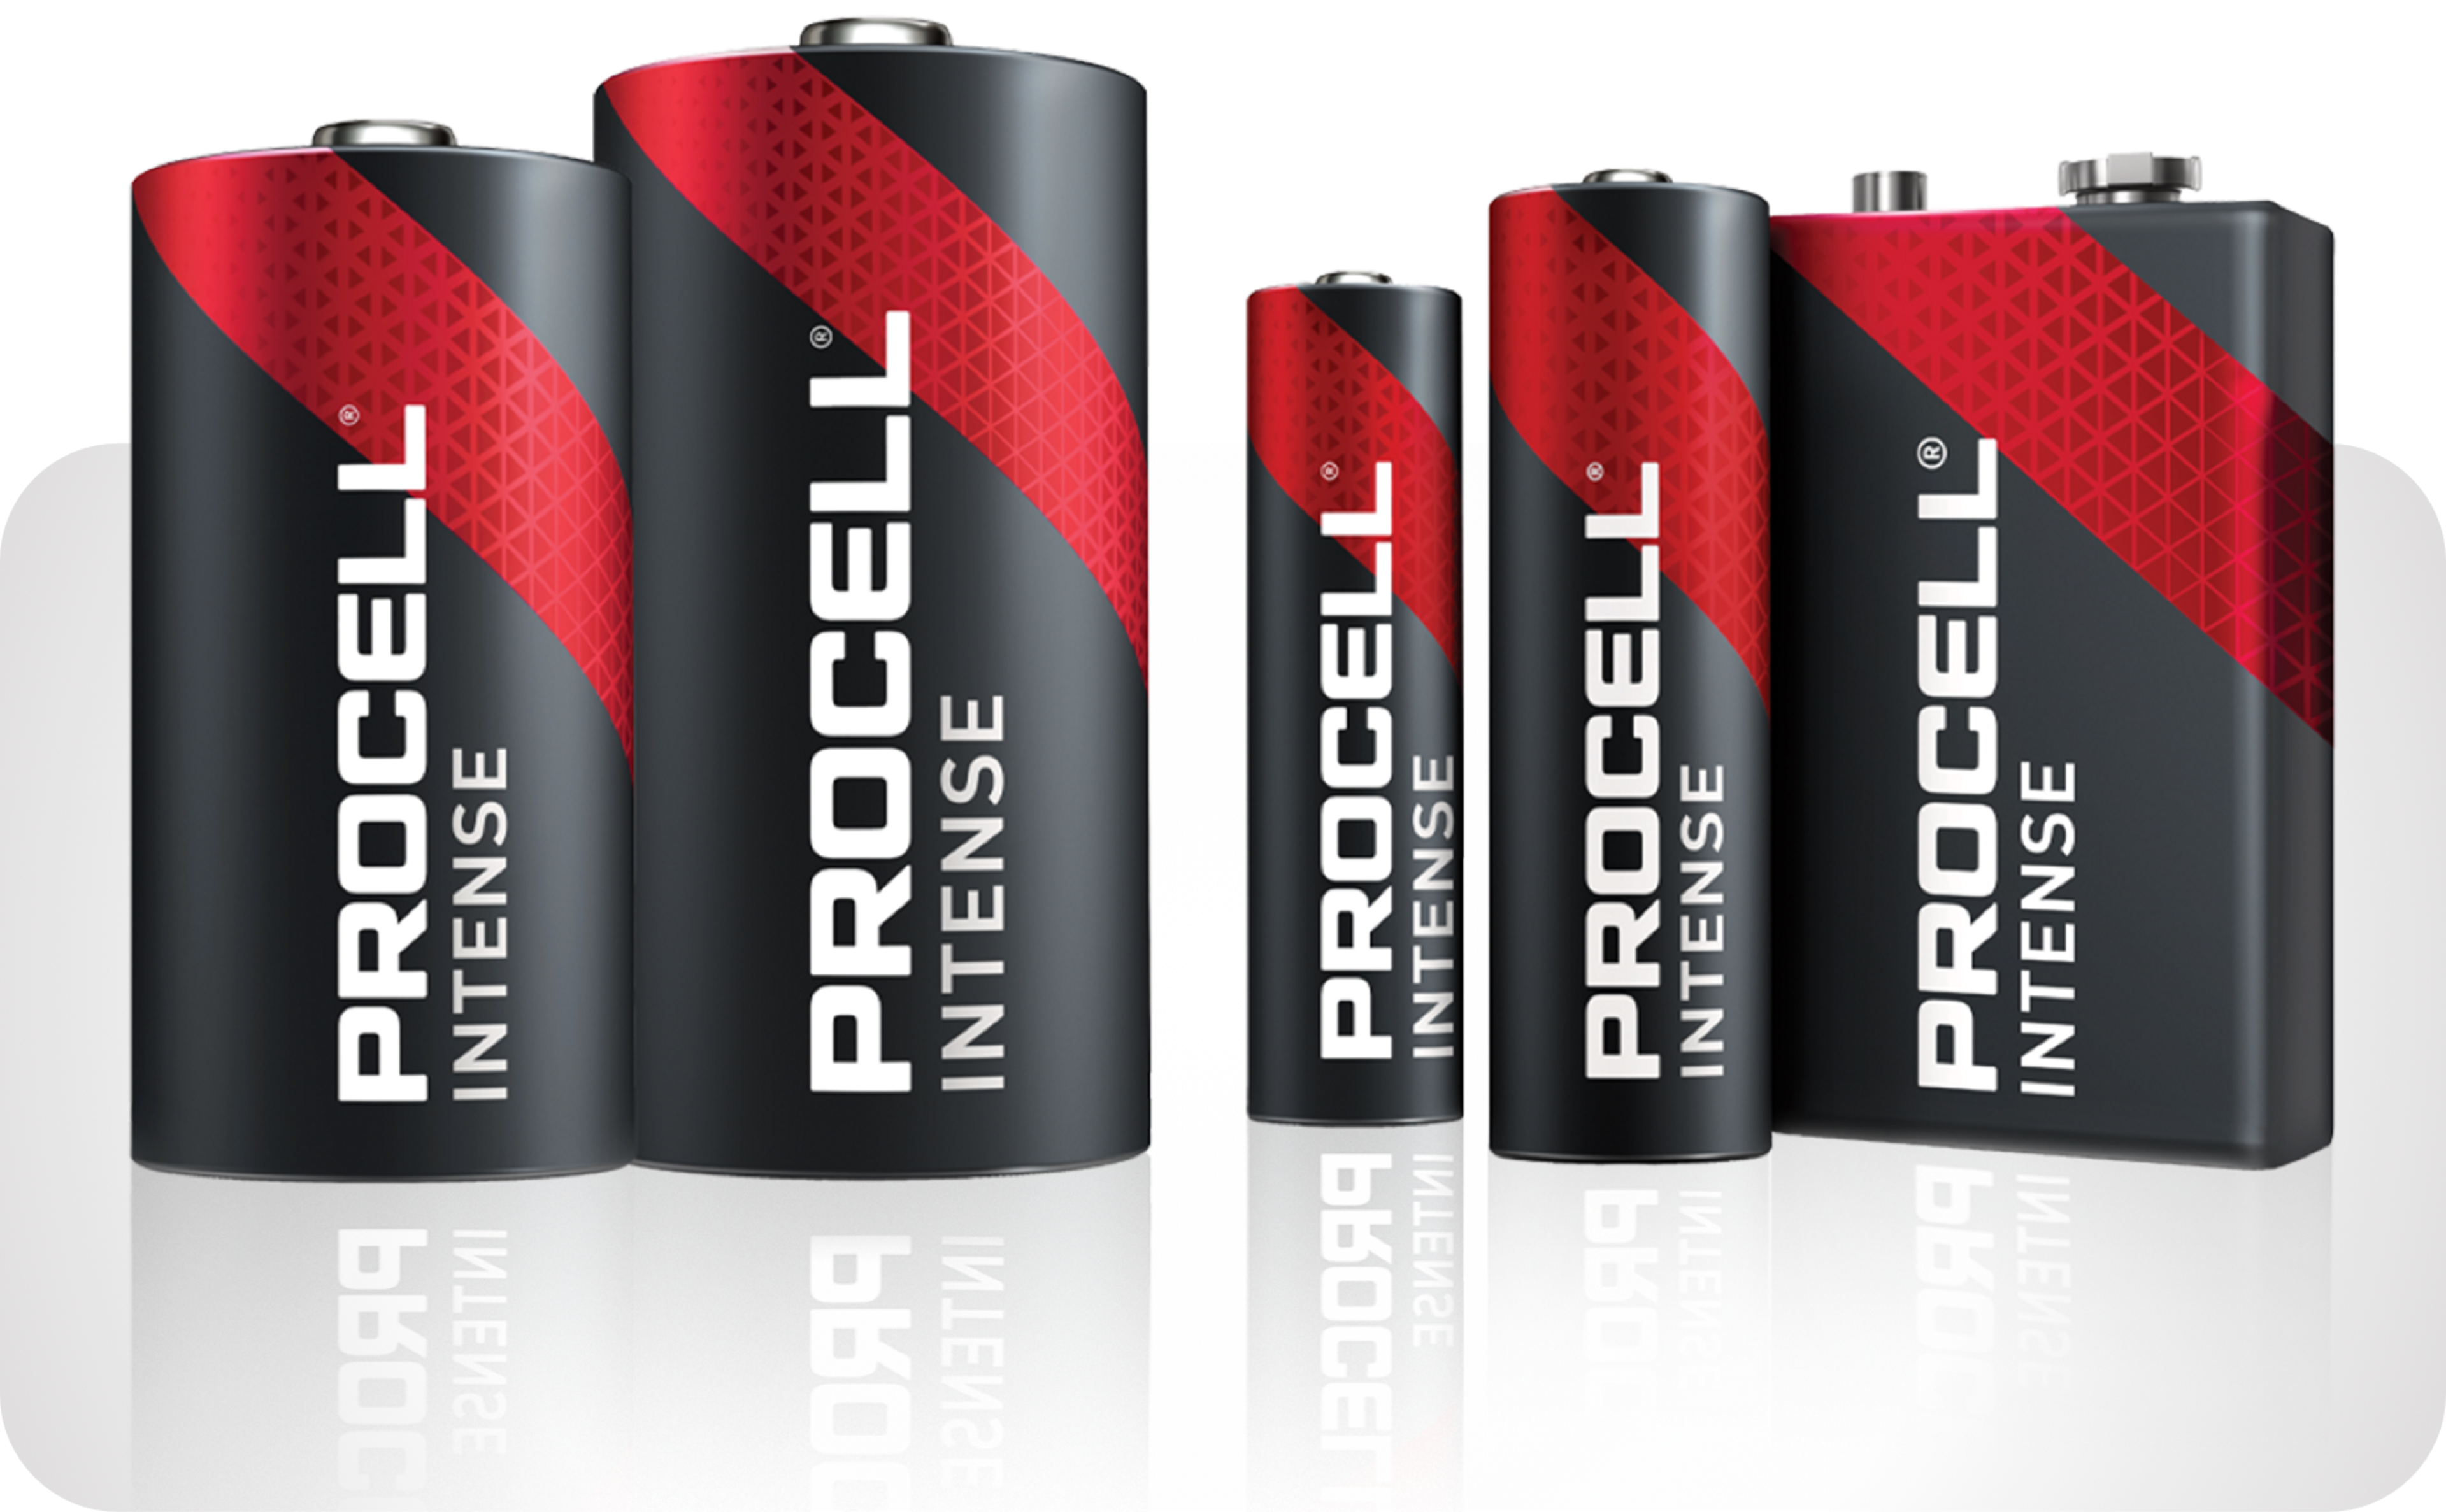 Picture showing various Procell Plus batteries  in popular sizes: AA, AAA, C, D and 9-volt